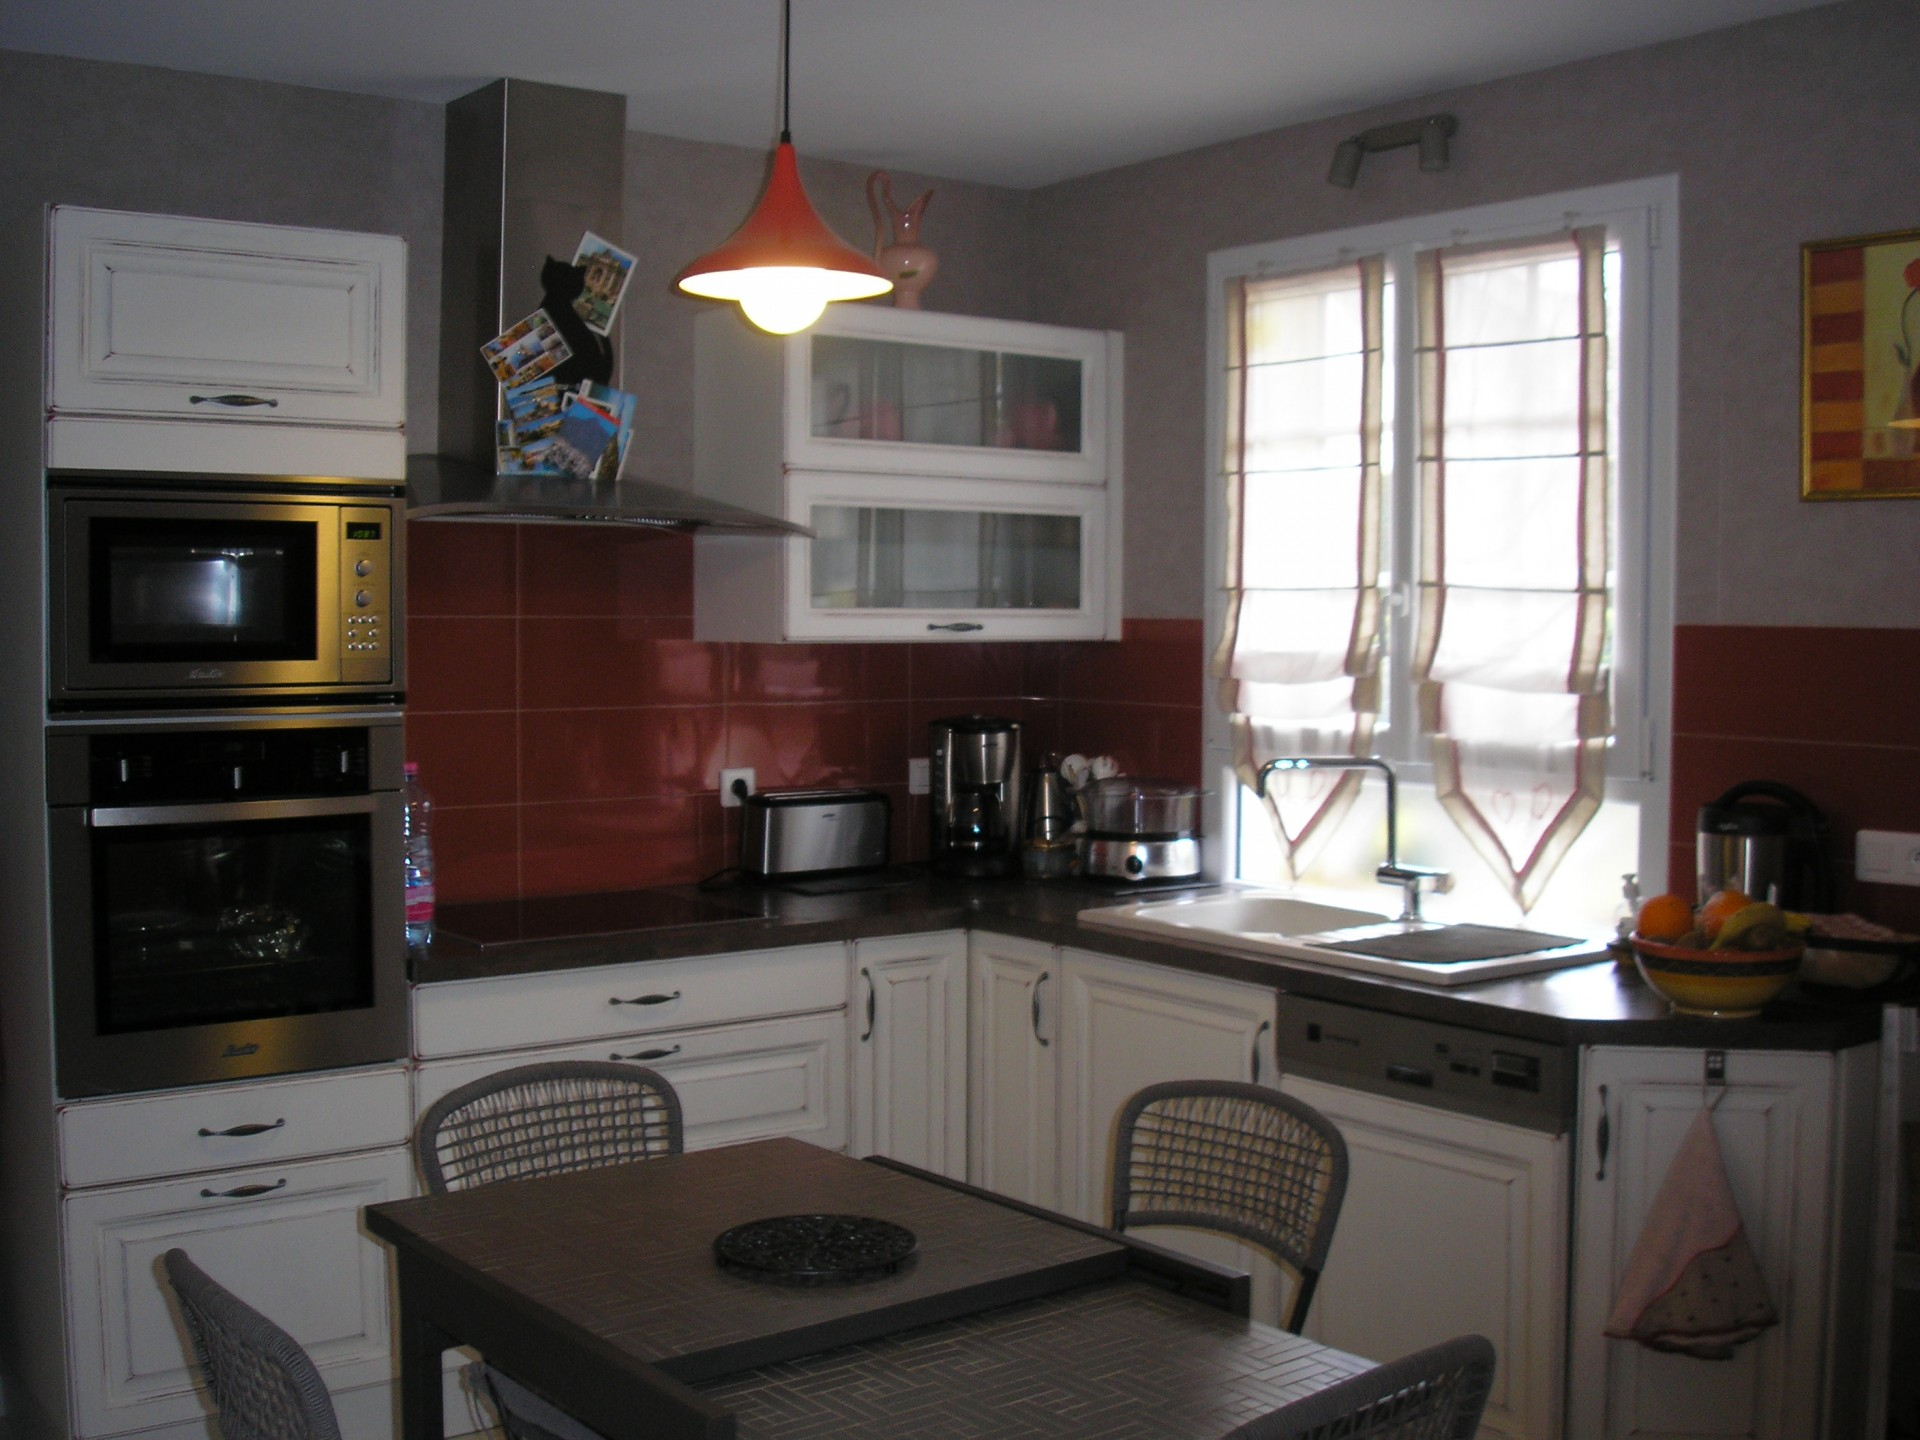 kitchen_24h_le_mans_b&b_guest_house_race